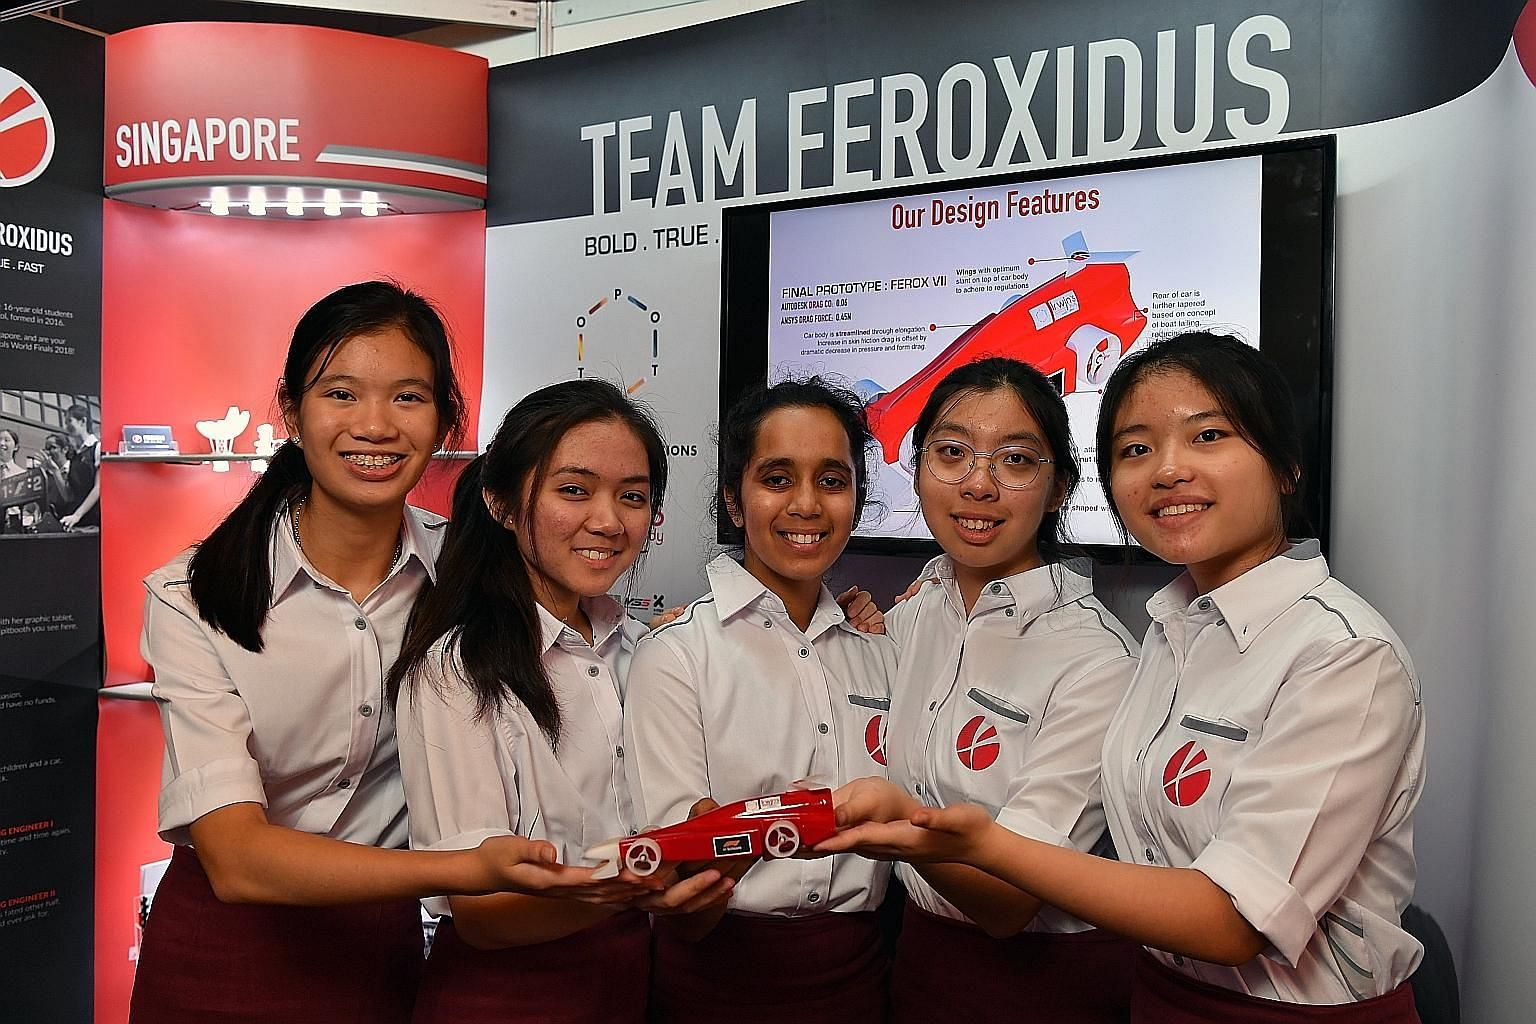 (From left) Nicole Lee, Kirsten Negapatan, Harshita Chauhan, Angeline Lai and Charisse Kwong of Raffles Girls' School showing off their car. They took part earlier this month in the world finals of the F1 in Schools competition, said to be a test of